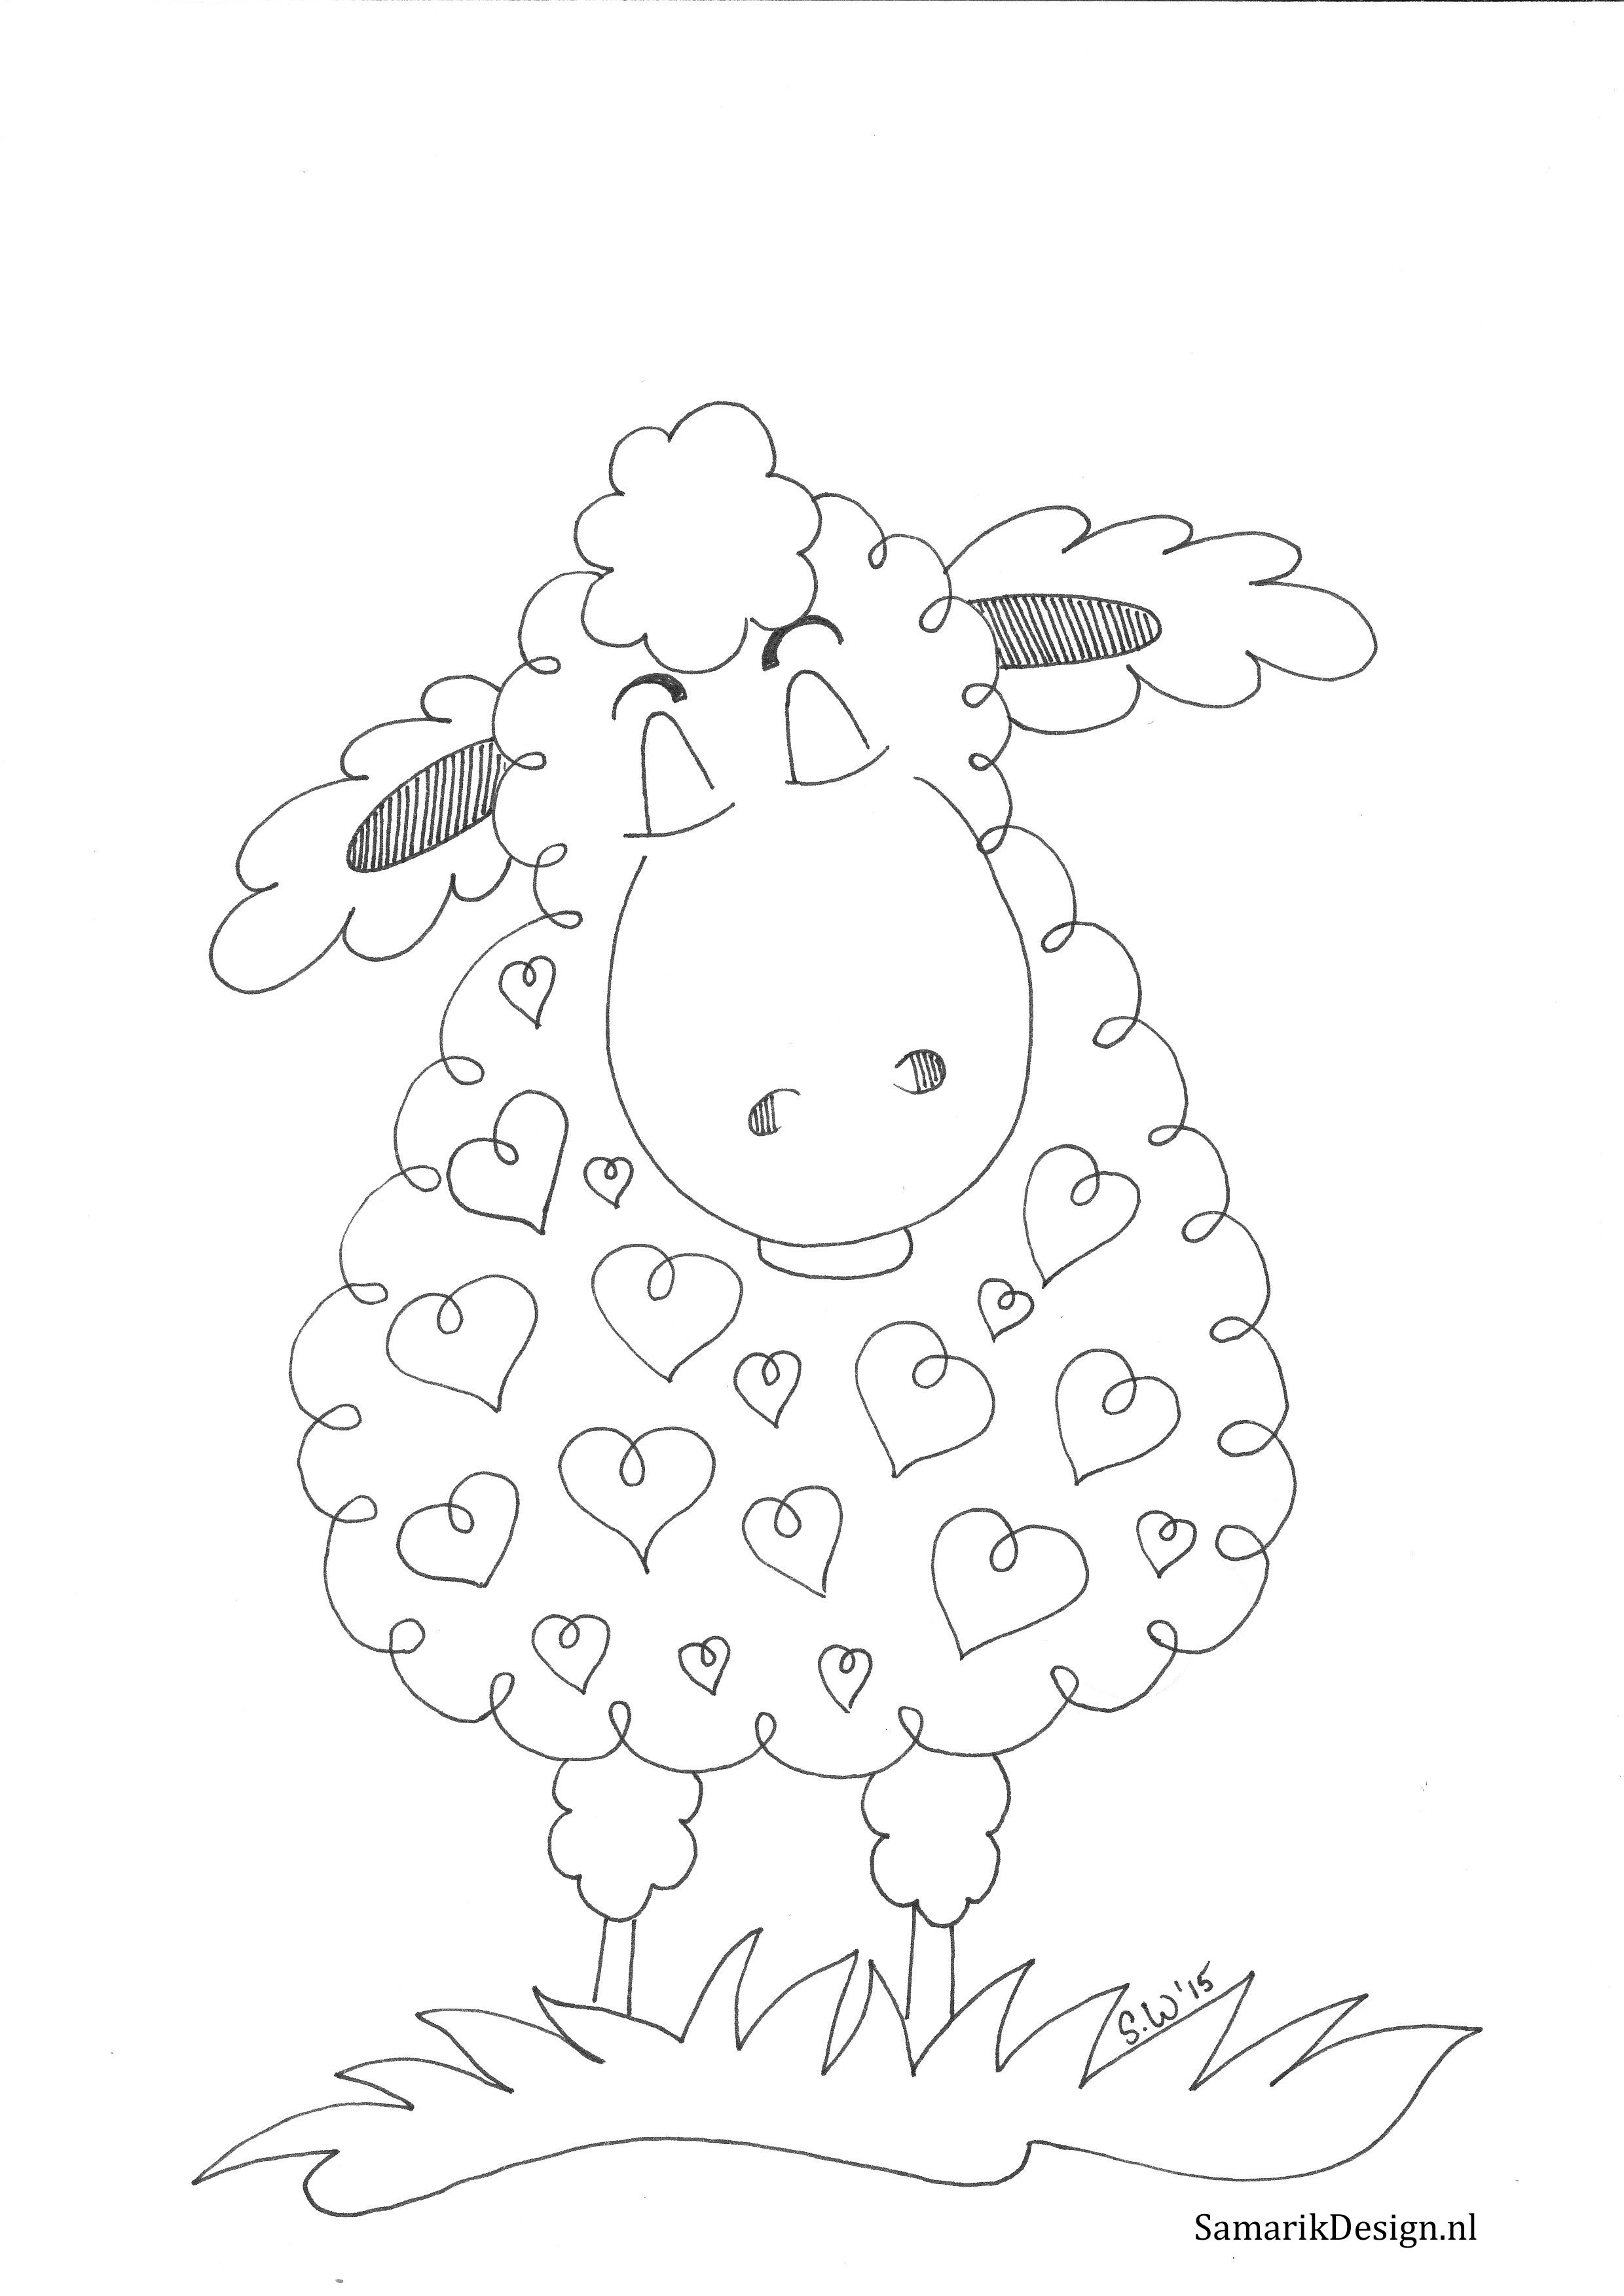 Schaap doodle ~ I think the hearts add the loving touch